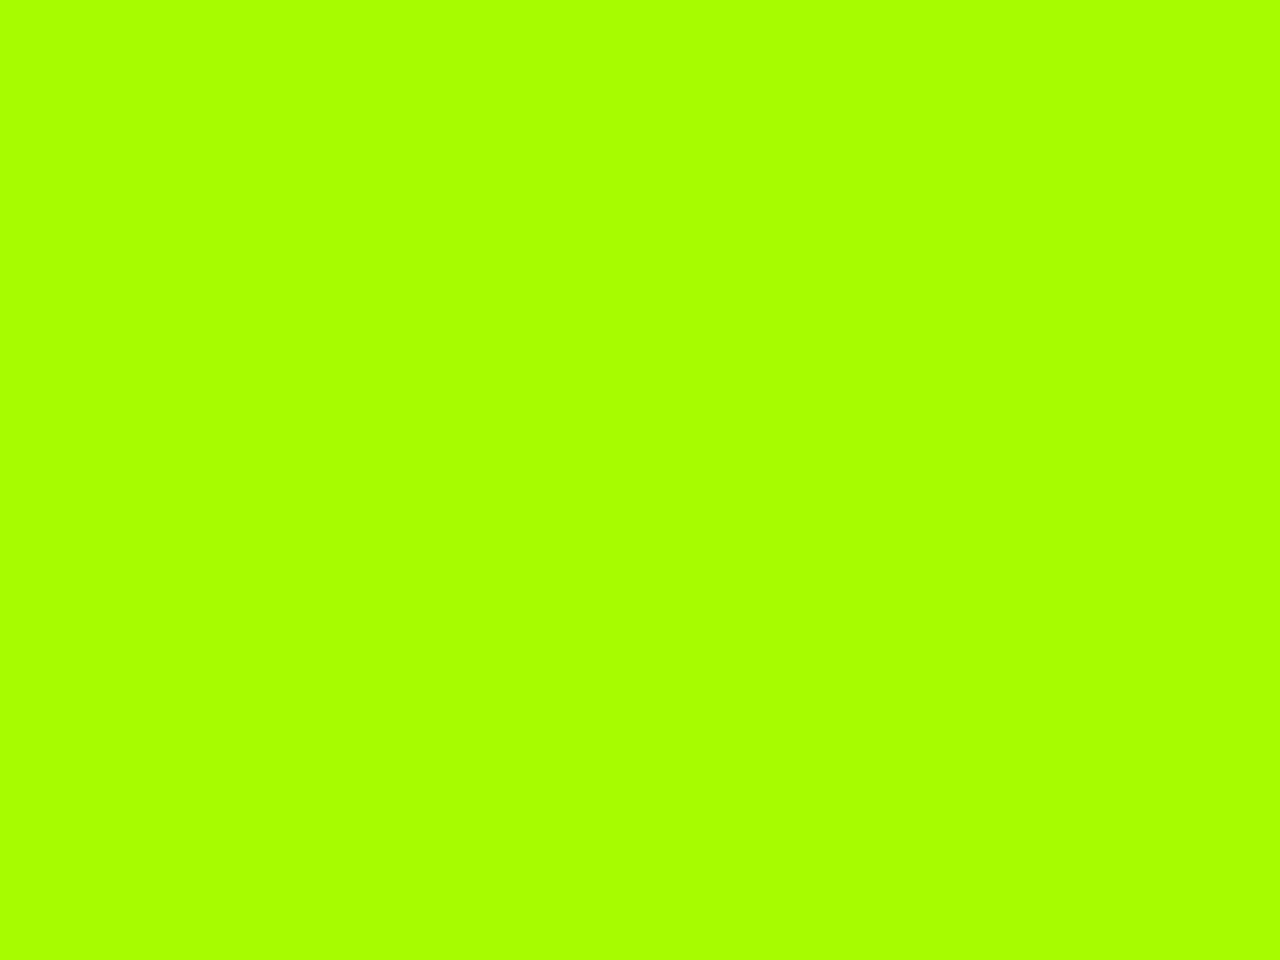 1280x960 Spring Bud Solid Color Background